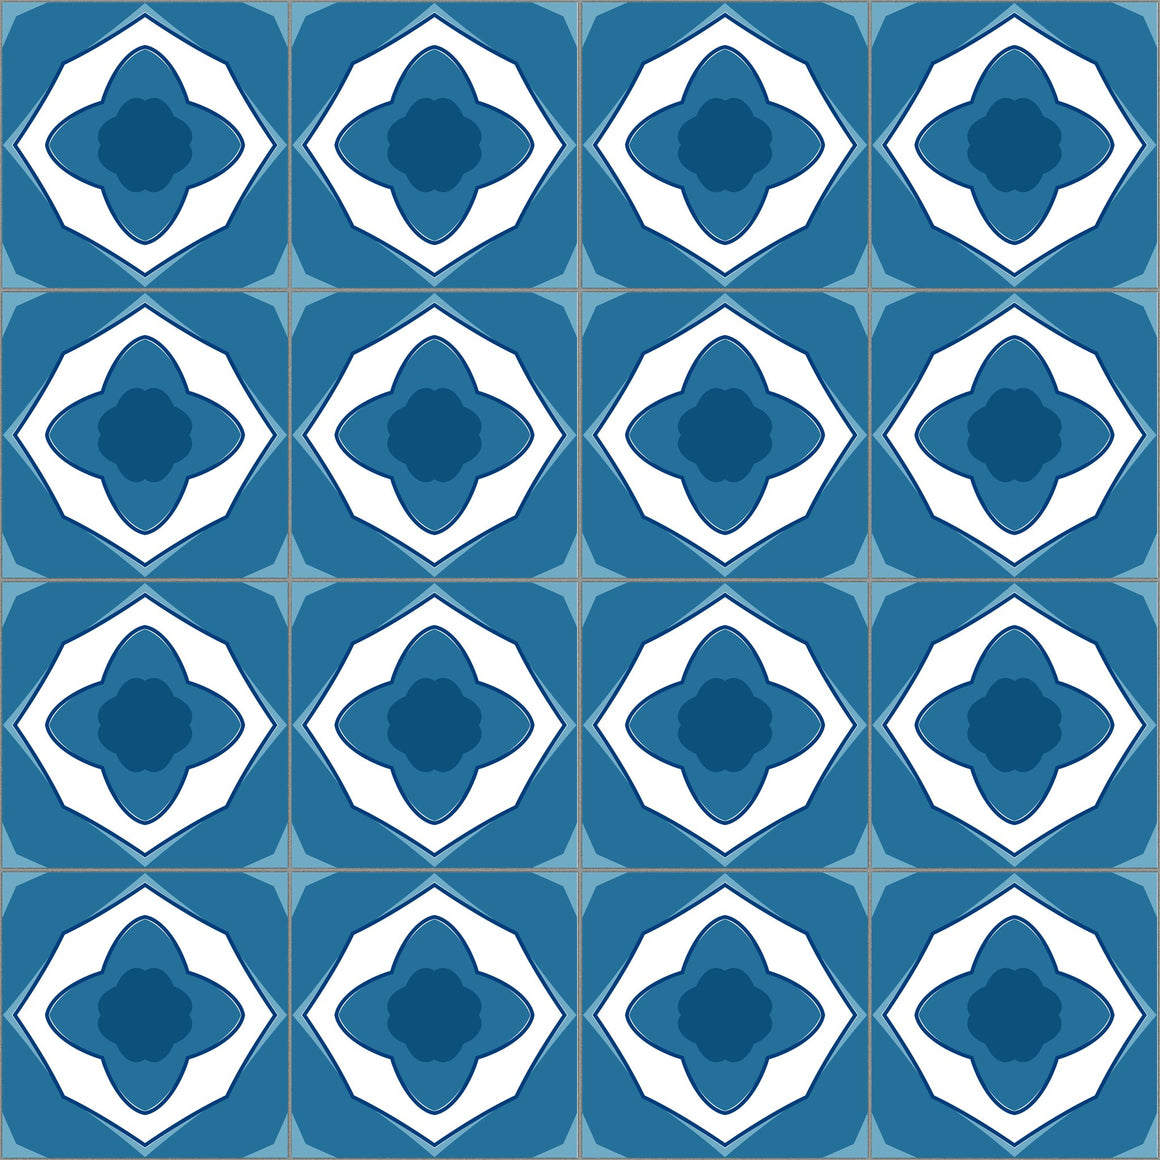 Tile stickers - KP109